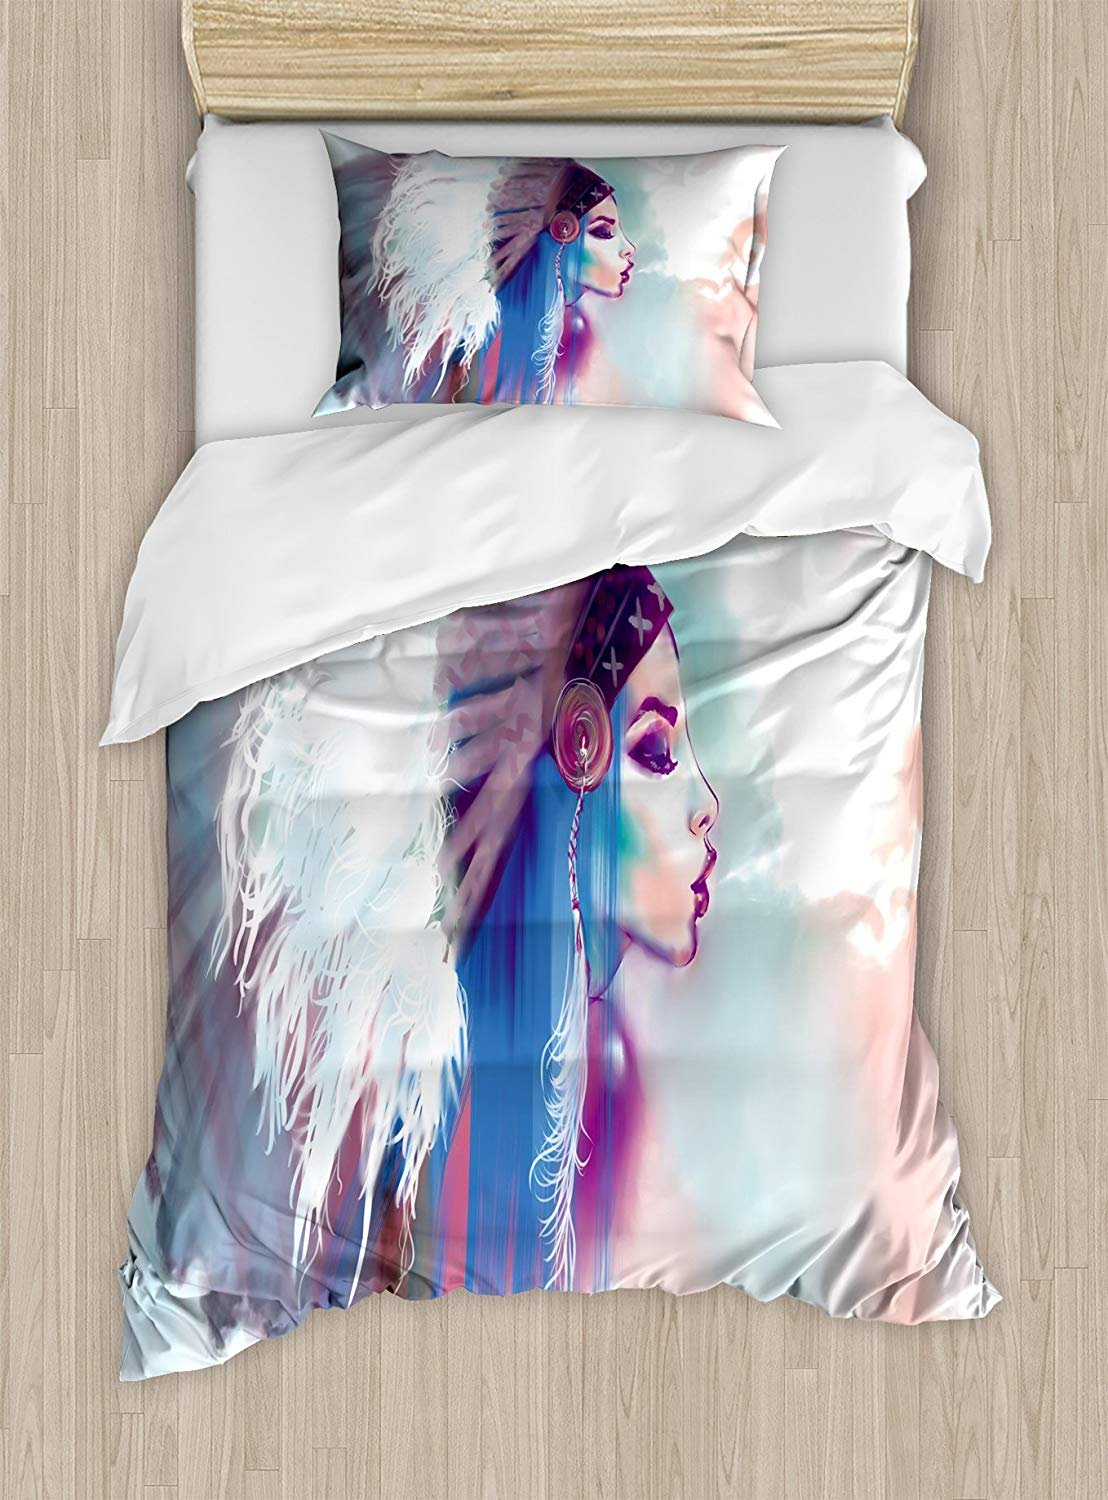 Twin XL Extra Long Bedding Set,Native American Duvet Cover Set,Girl Smoking Pipe with Traditional Clothes Abstract Watercolor Background,Cosy House Collection 4 Piece Bedding Sets